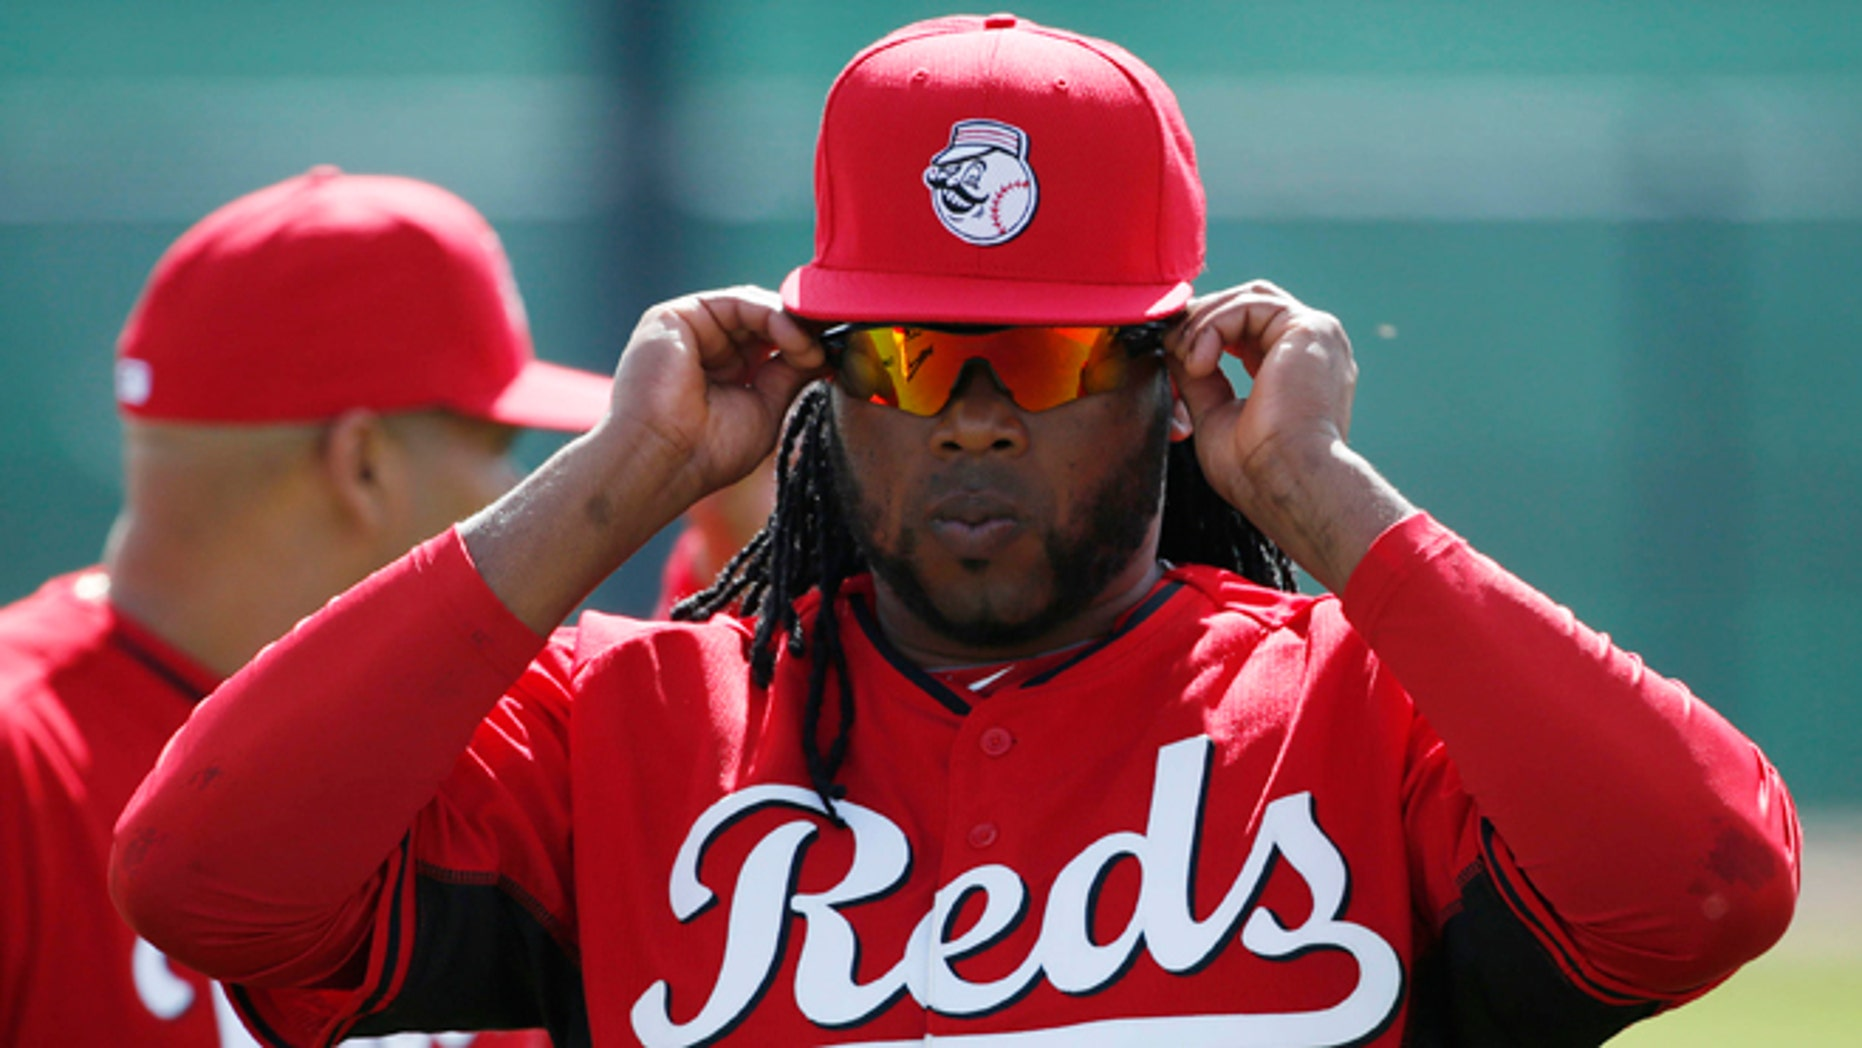 Cincinnati Reds' player Johnny Cueto adjusts his sunglasses during the team's first day of spring training practice Thursday, Feb. 19, 2015, in Goodyear, Ariz. (AP Photo/John Locher)